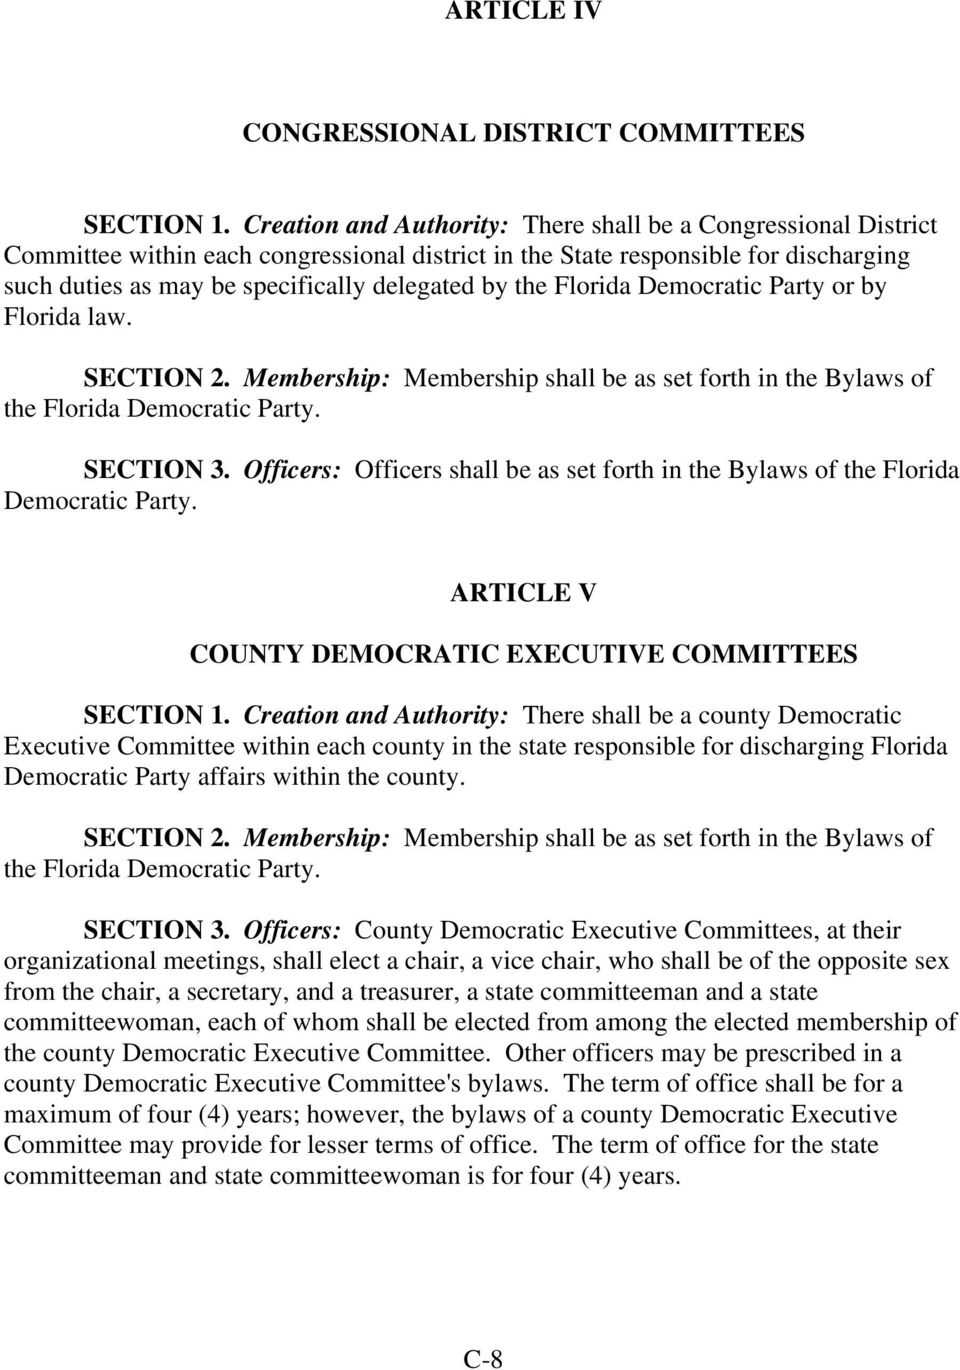 the Florida Democratic Party or by Florida law. SECTION 2. Membership: Membership shall be as set forth in the Bylaws of the Florida Democratic Party. SECTION 3.